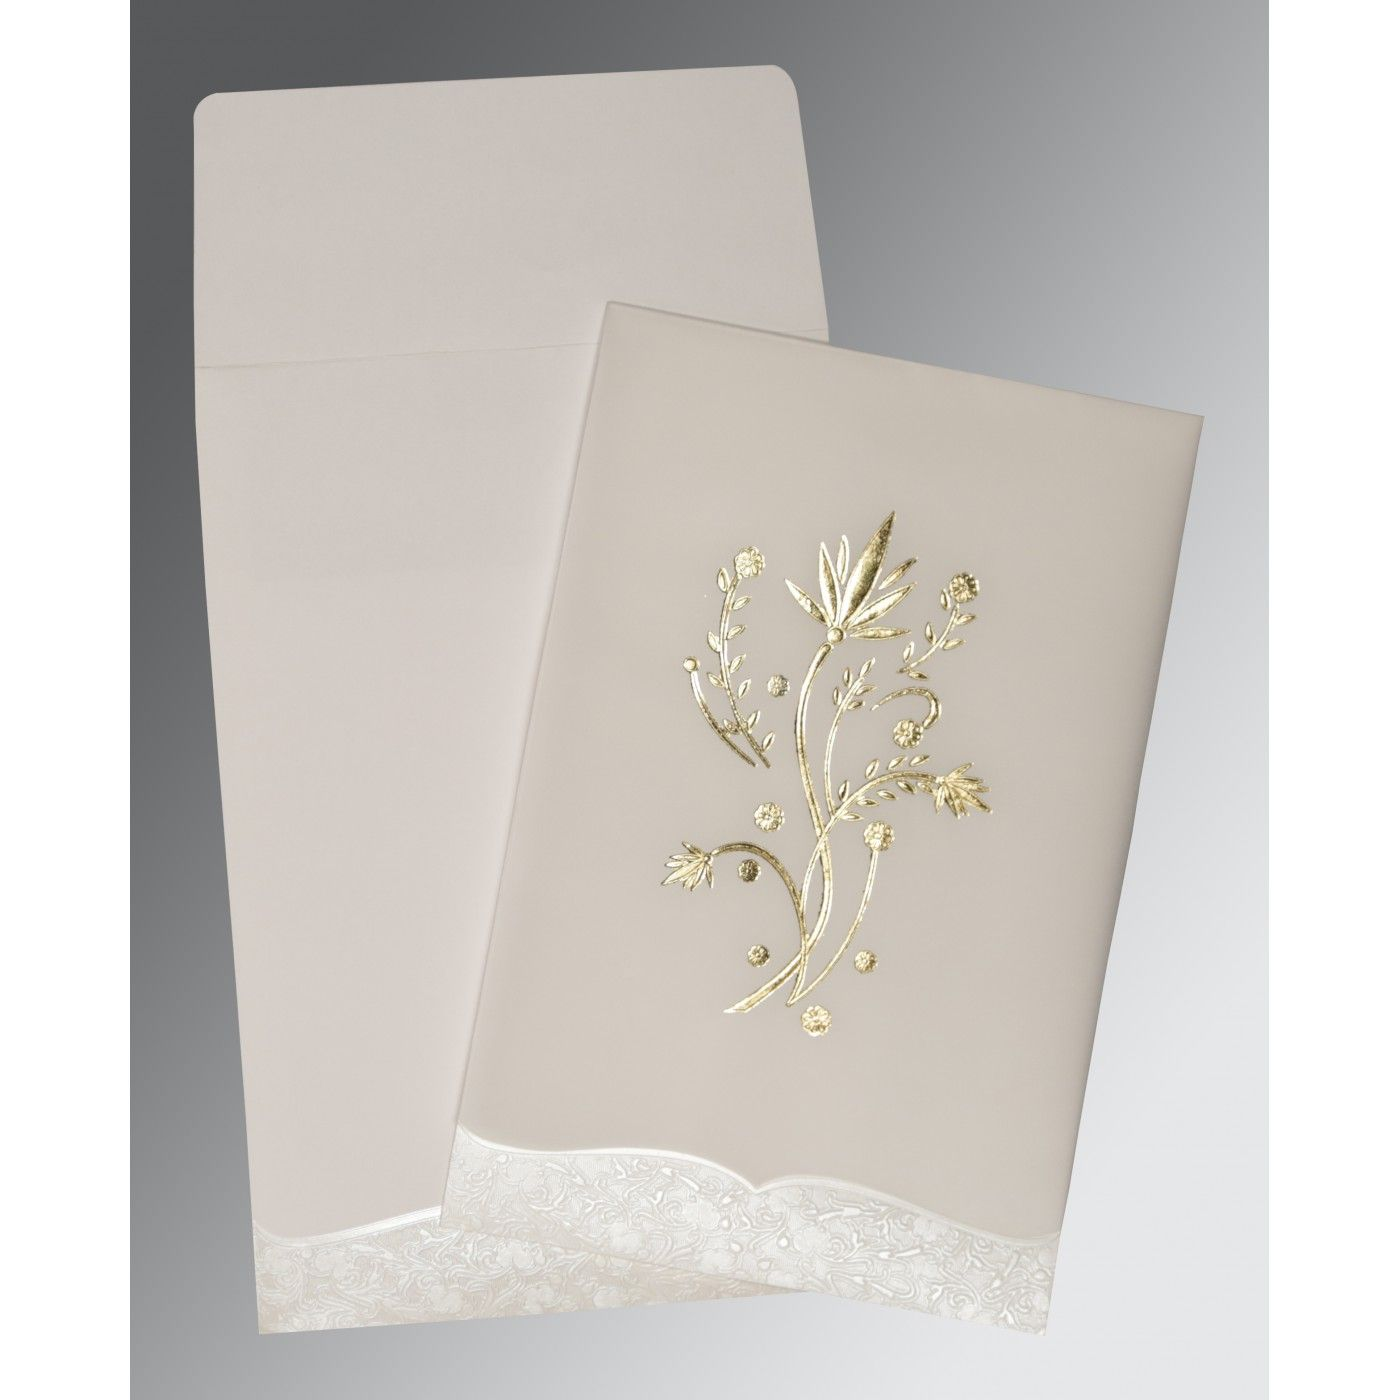 OFF-WHITE FLORAL THEMED - FOIL STAMPED WEDDING CARD : CRU-1495 - IndianWeddingCards